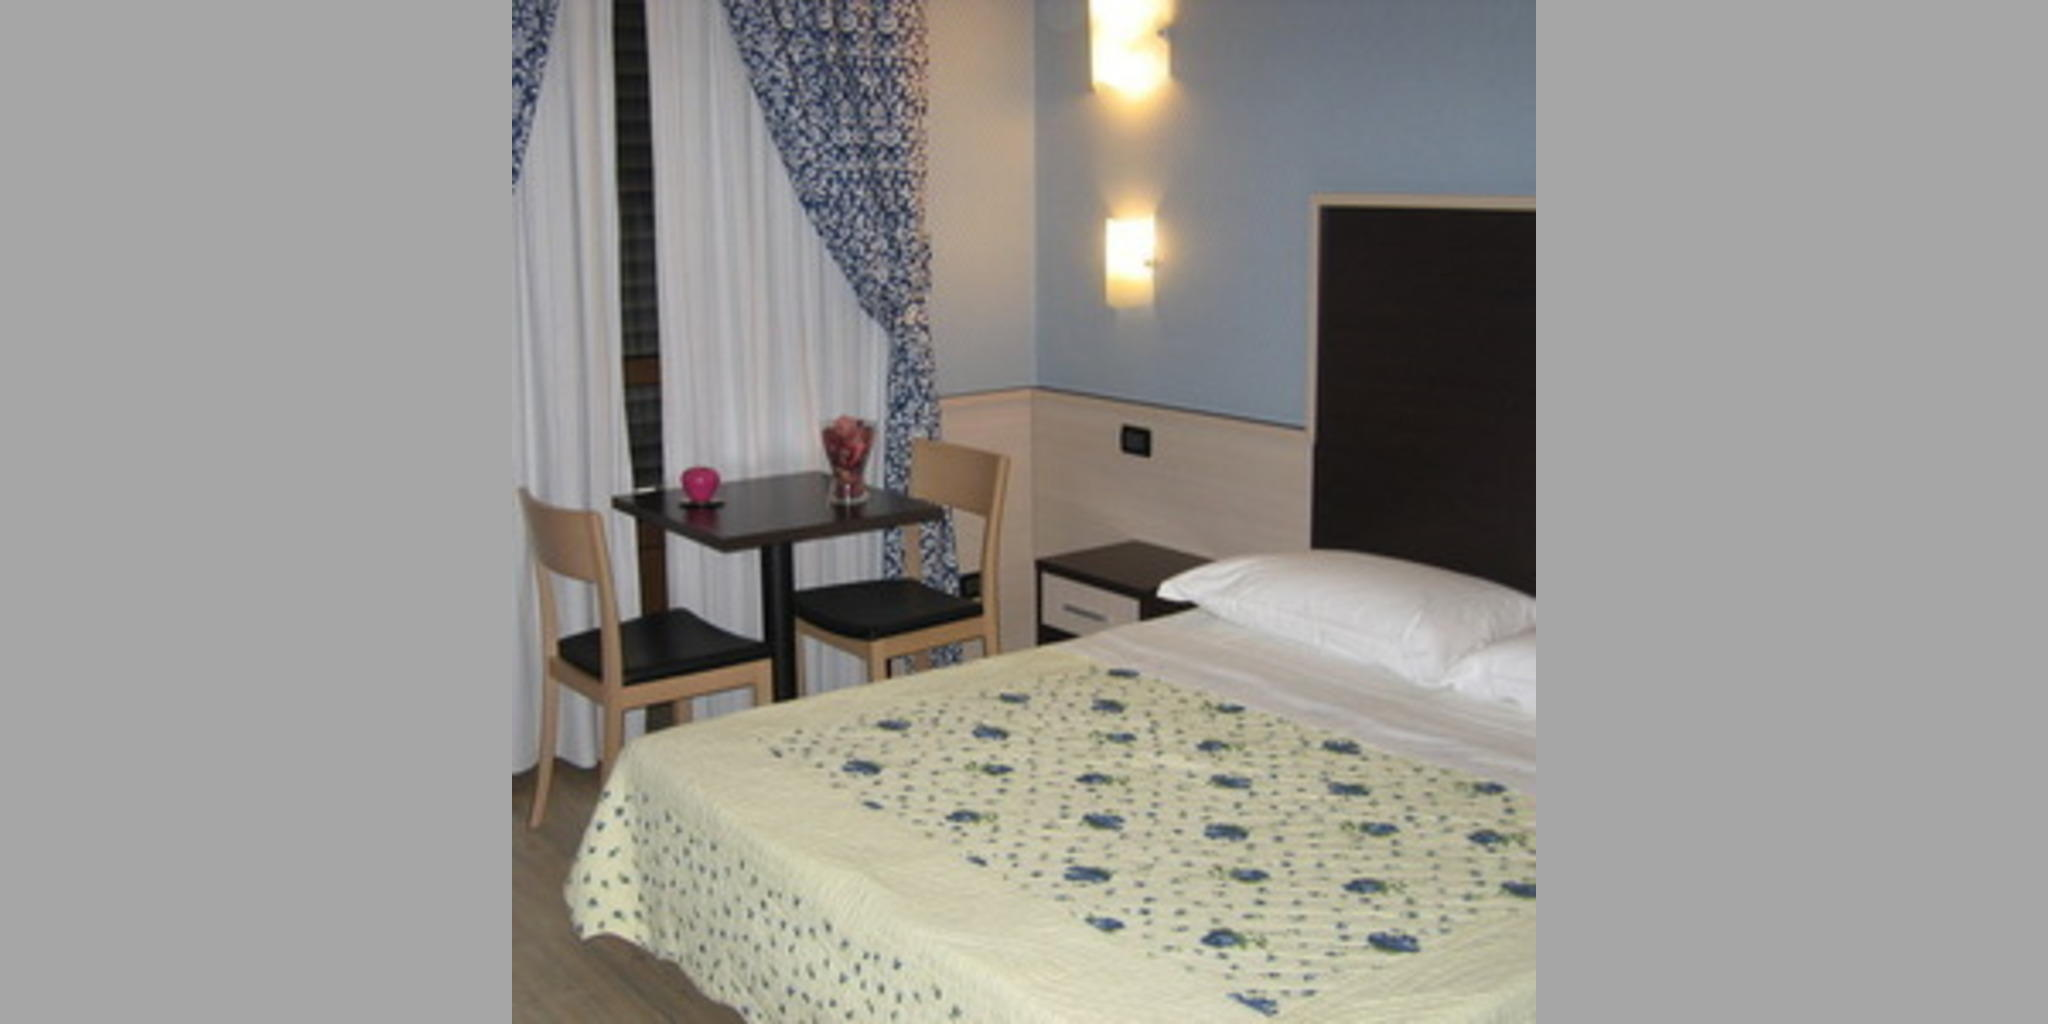 Bed & Breakfast Roma - Veneto_Sicilia